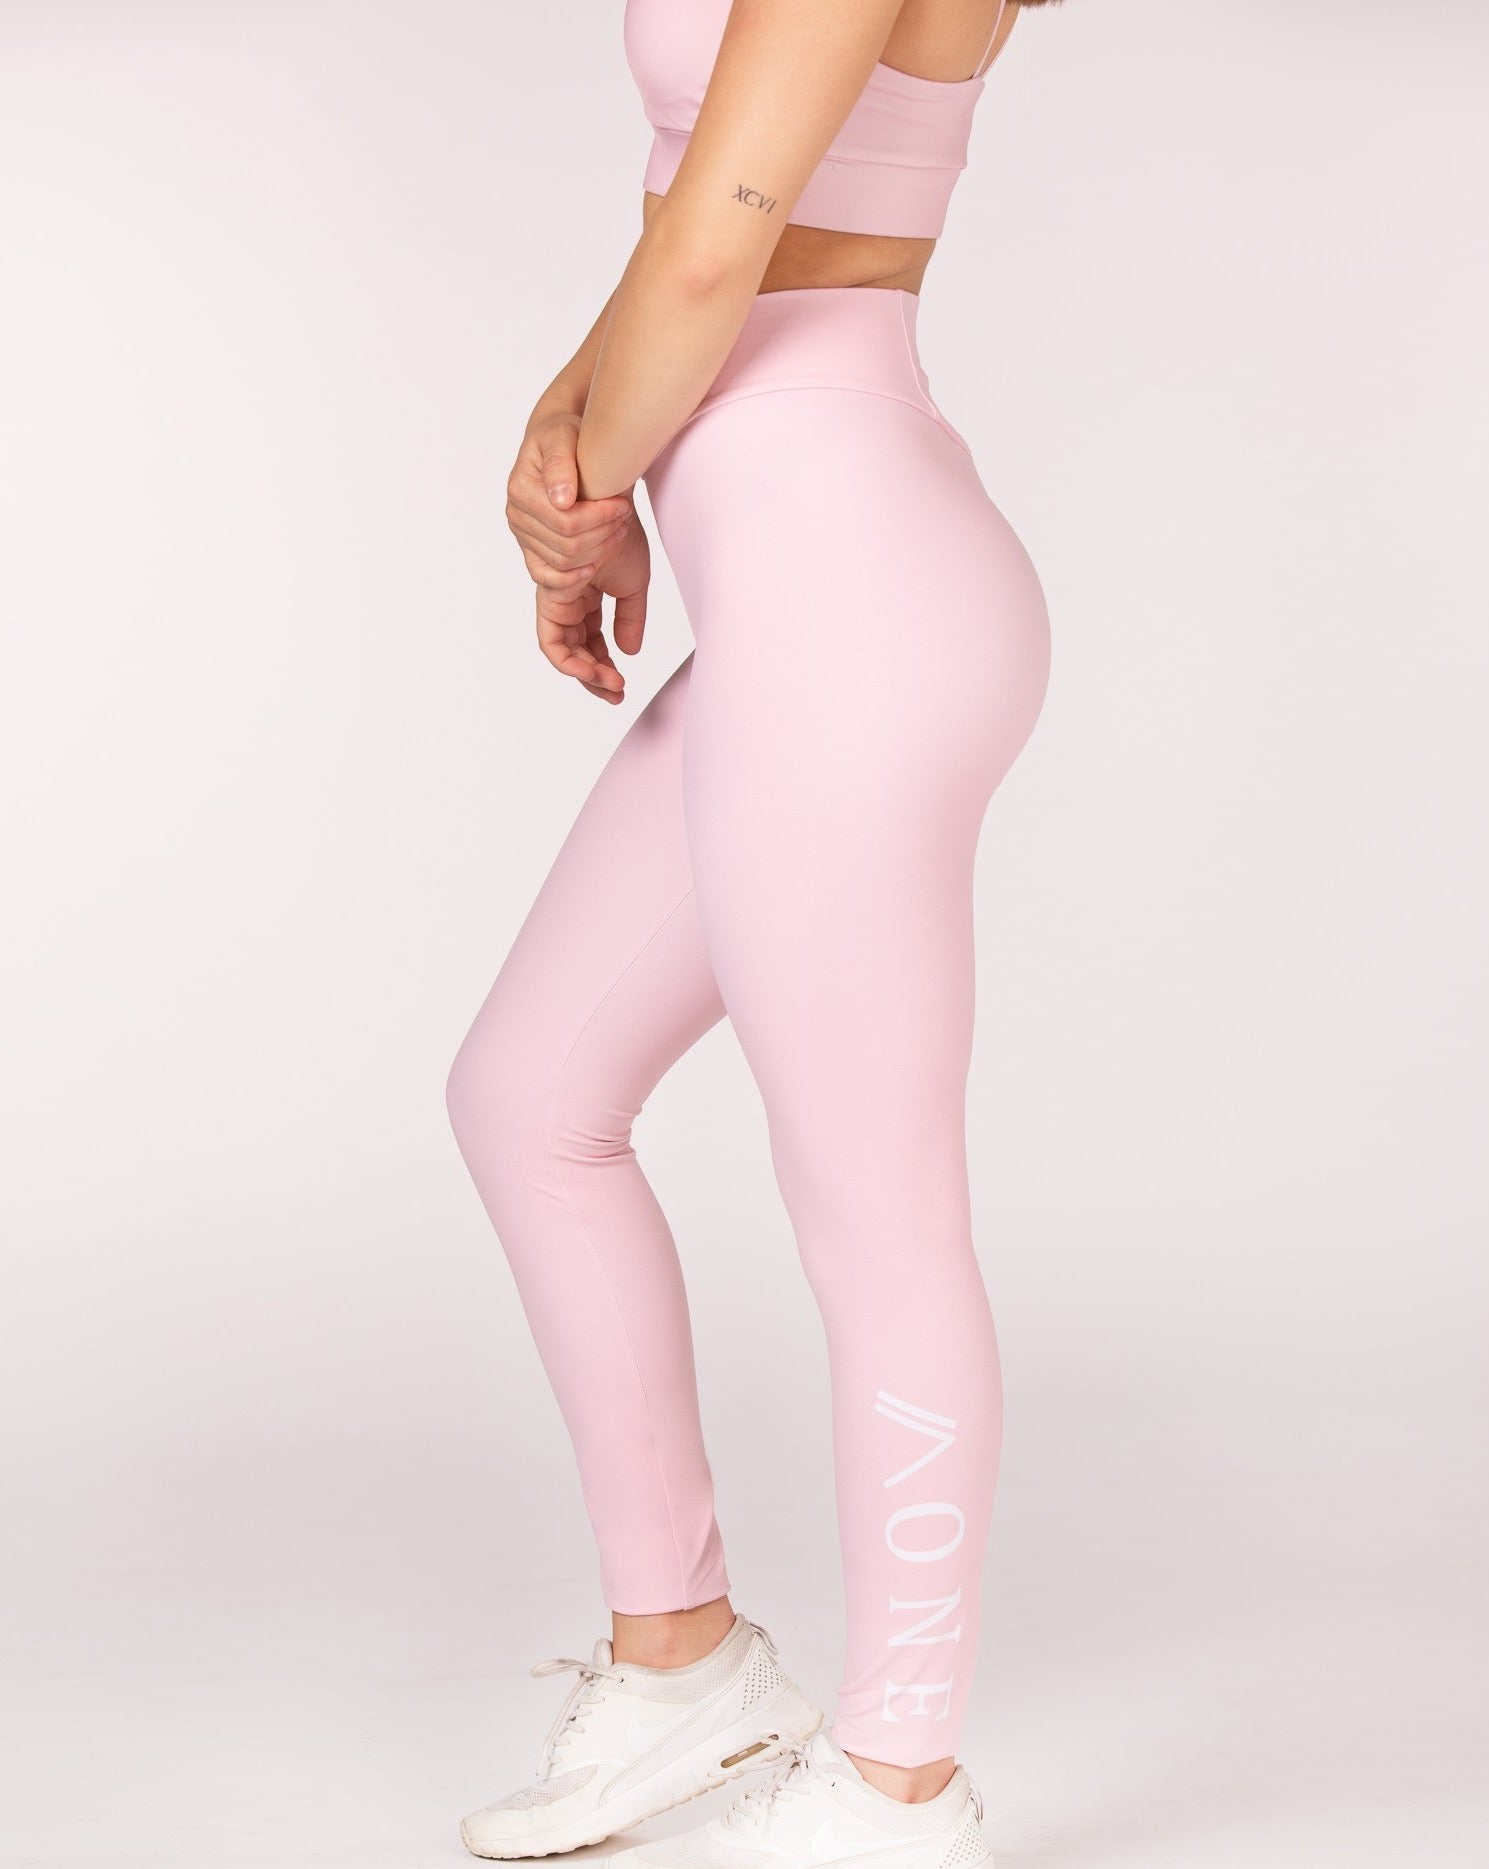 RELENTLESS - LEGGING rose